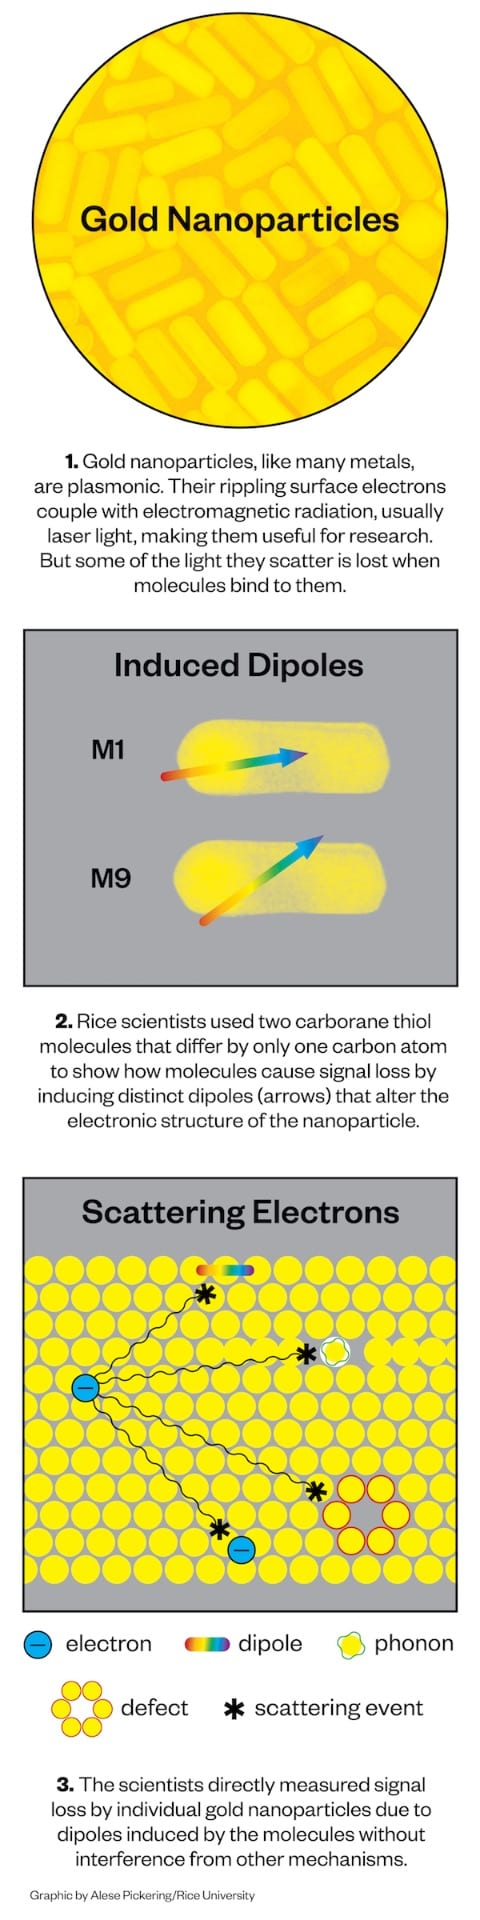 Illustration shows how scientists measure signal loss by plasmonic gold nanoparticles by attaching molecules that create damping on the surface.